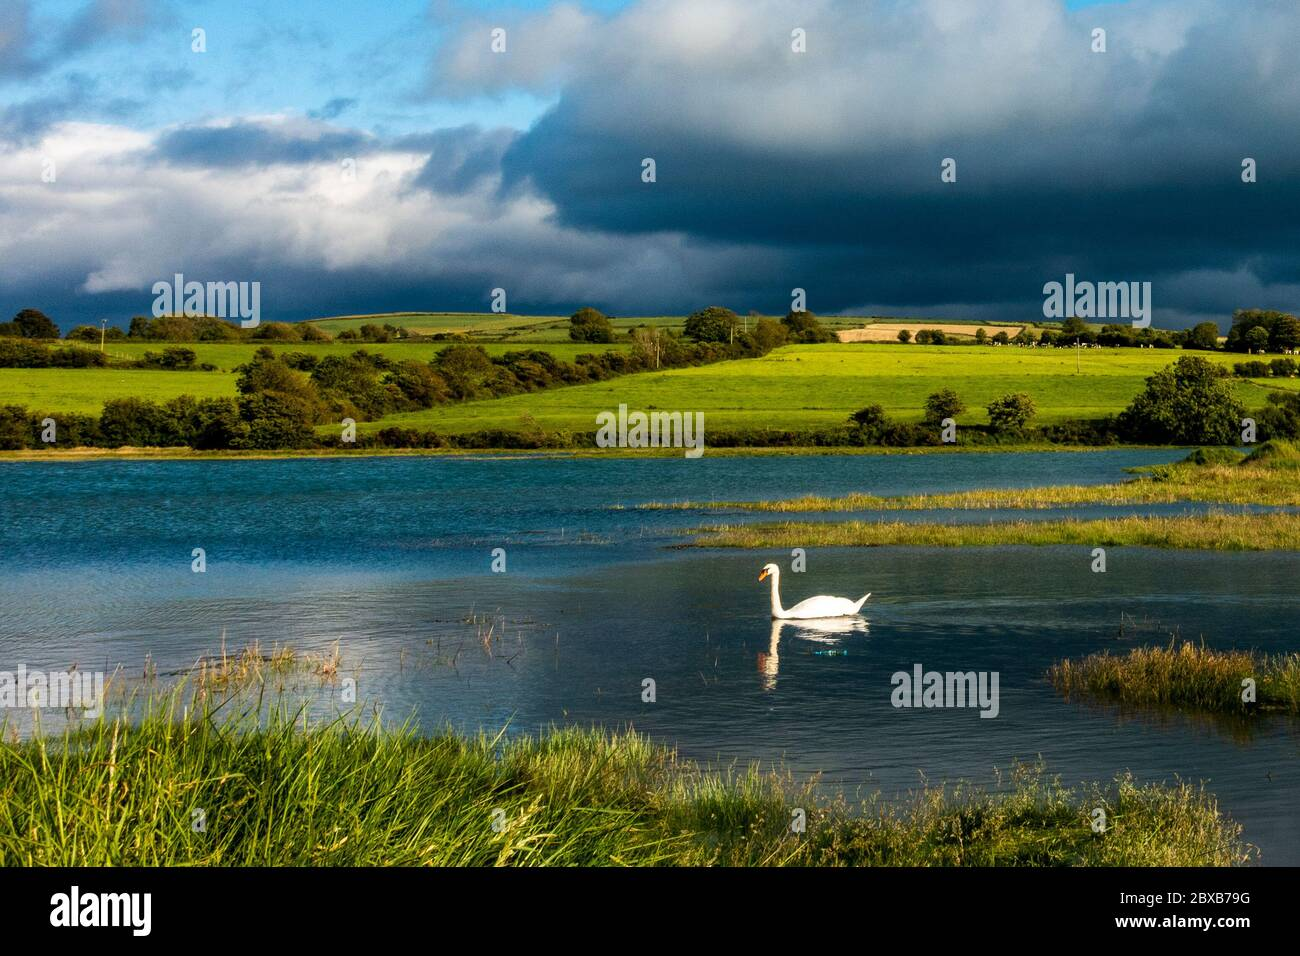 timoleague-west-cork-ireland-6th-june-2020-a-swan-swims-at-high-tide-in-timoleague-as-dark-clouds-loom-overhead-ireland-is-experiencing-high-tides-due-to-the-waning-gibbous-moon-which-is-99-illuminated-tonight-credit-ag-newsalamy-live-news-2BXB79G.jpg